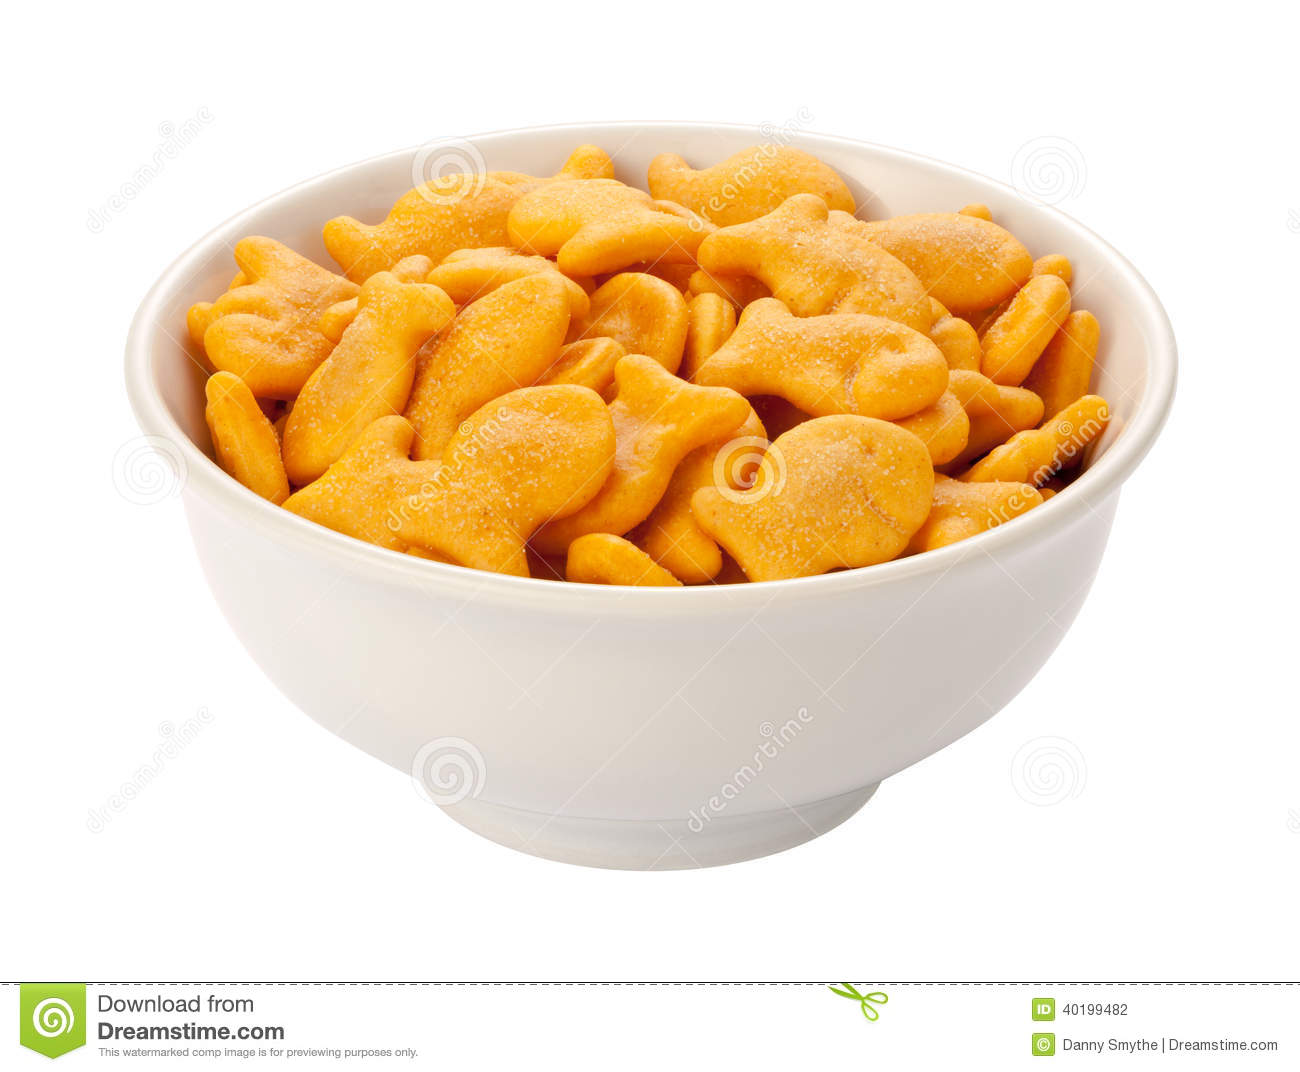 Goldfish crackers in a white dish stock photo image for Gold fish snacks